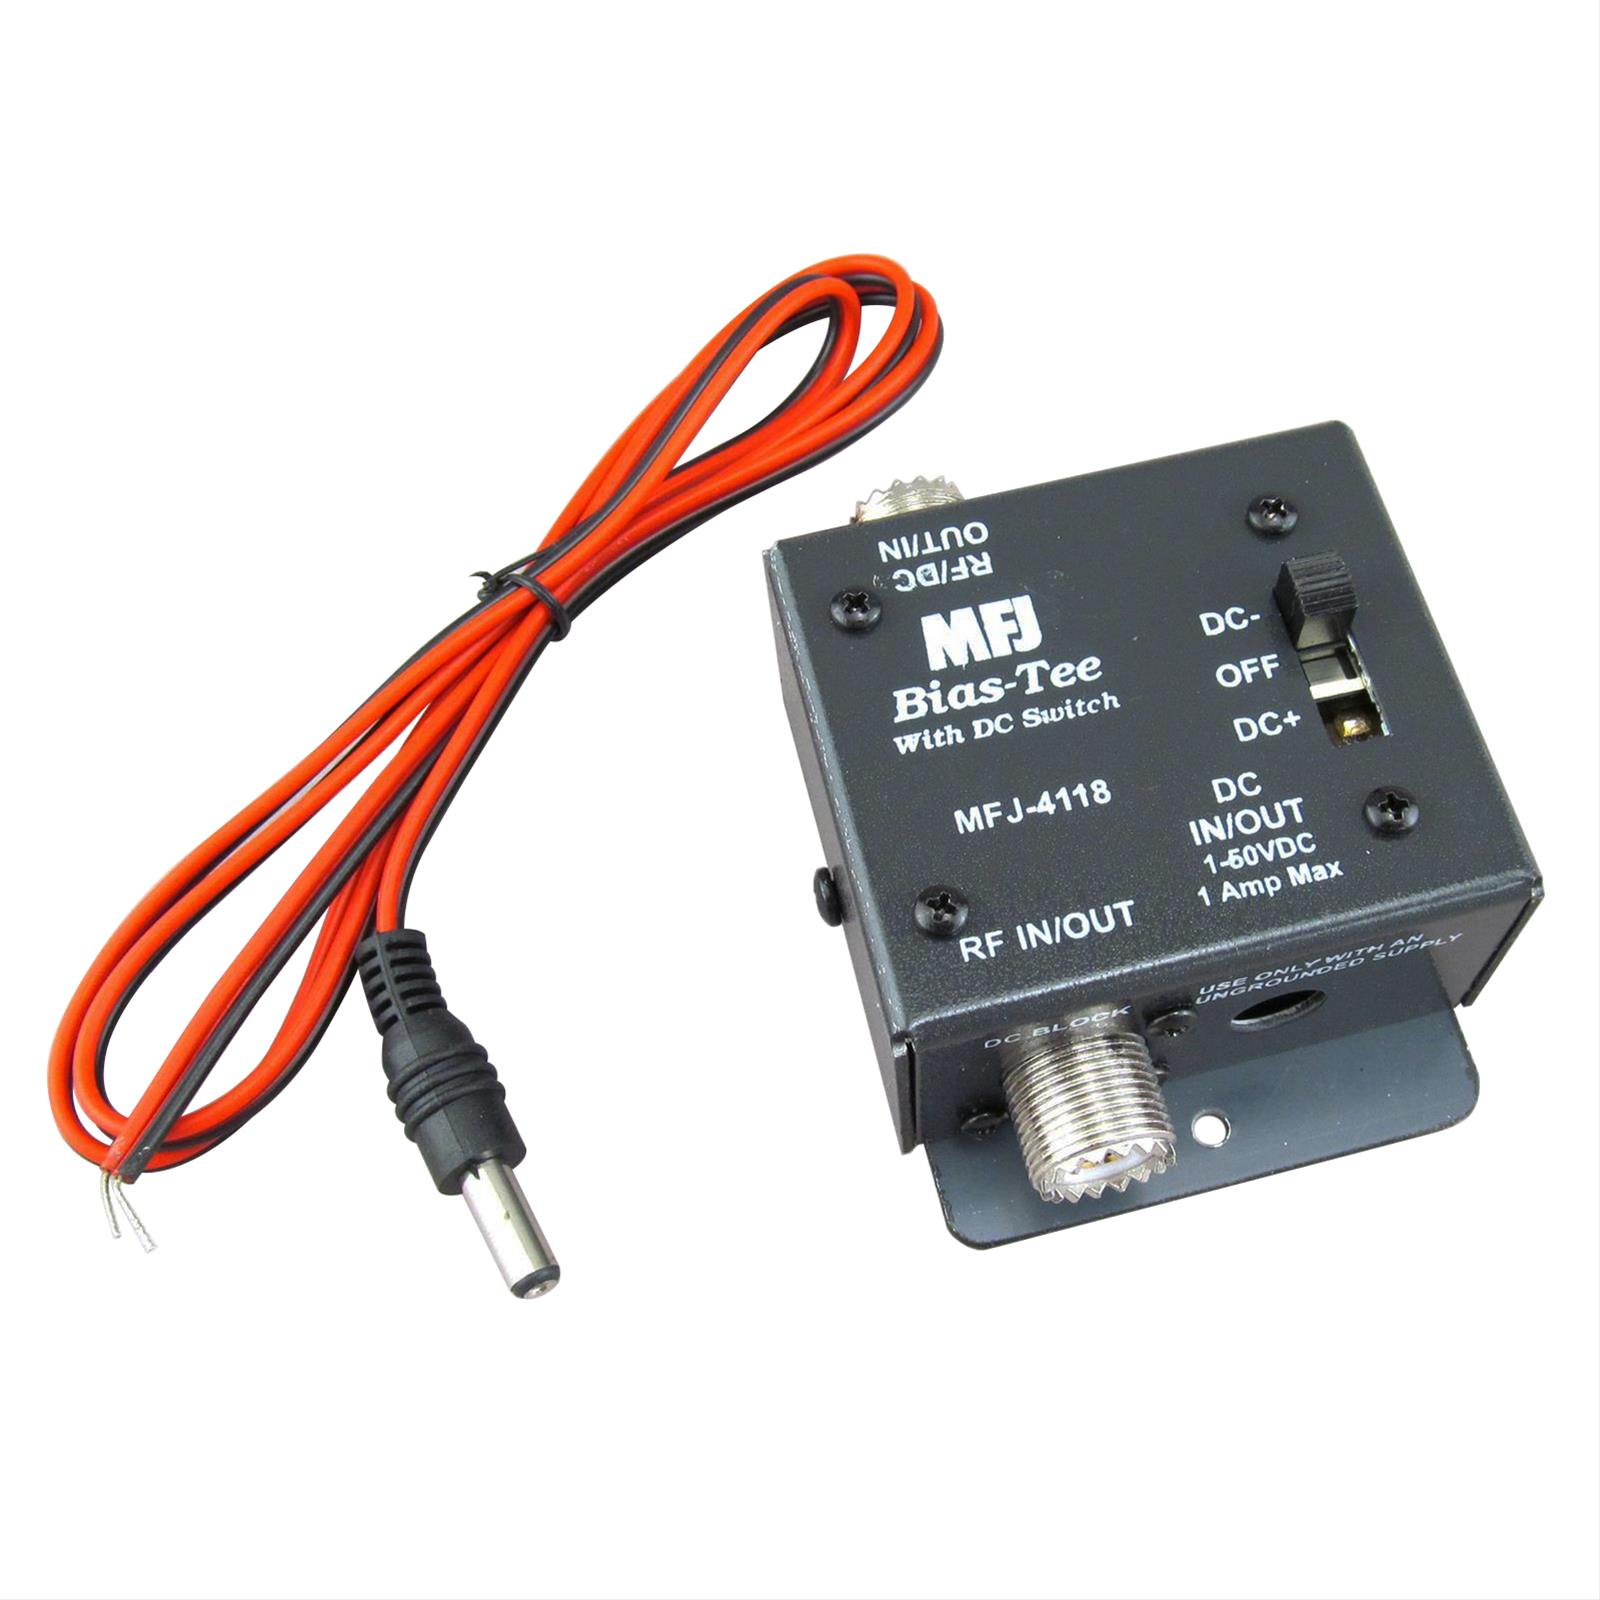 Mfj 4118 Bias Tee Dc Power Injectors Free Shipping On Antenna Injector Schematic Most Orders Over 99 At Dx Engineering